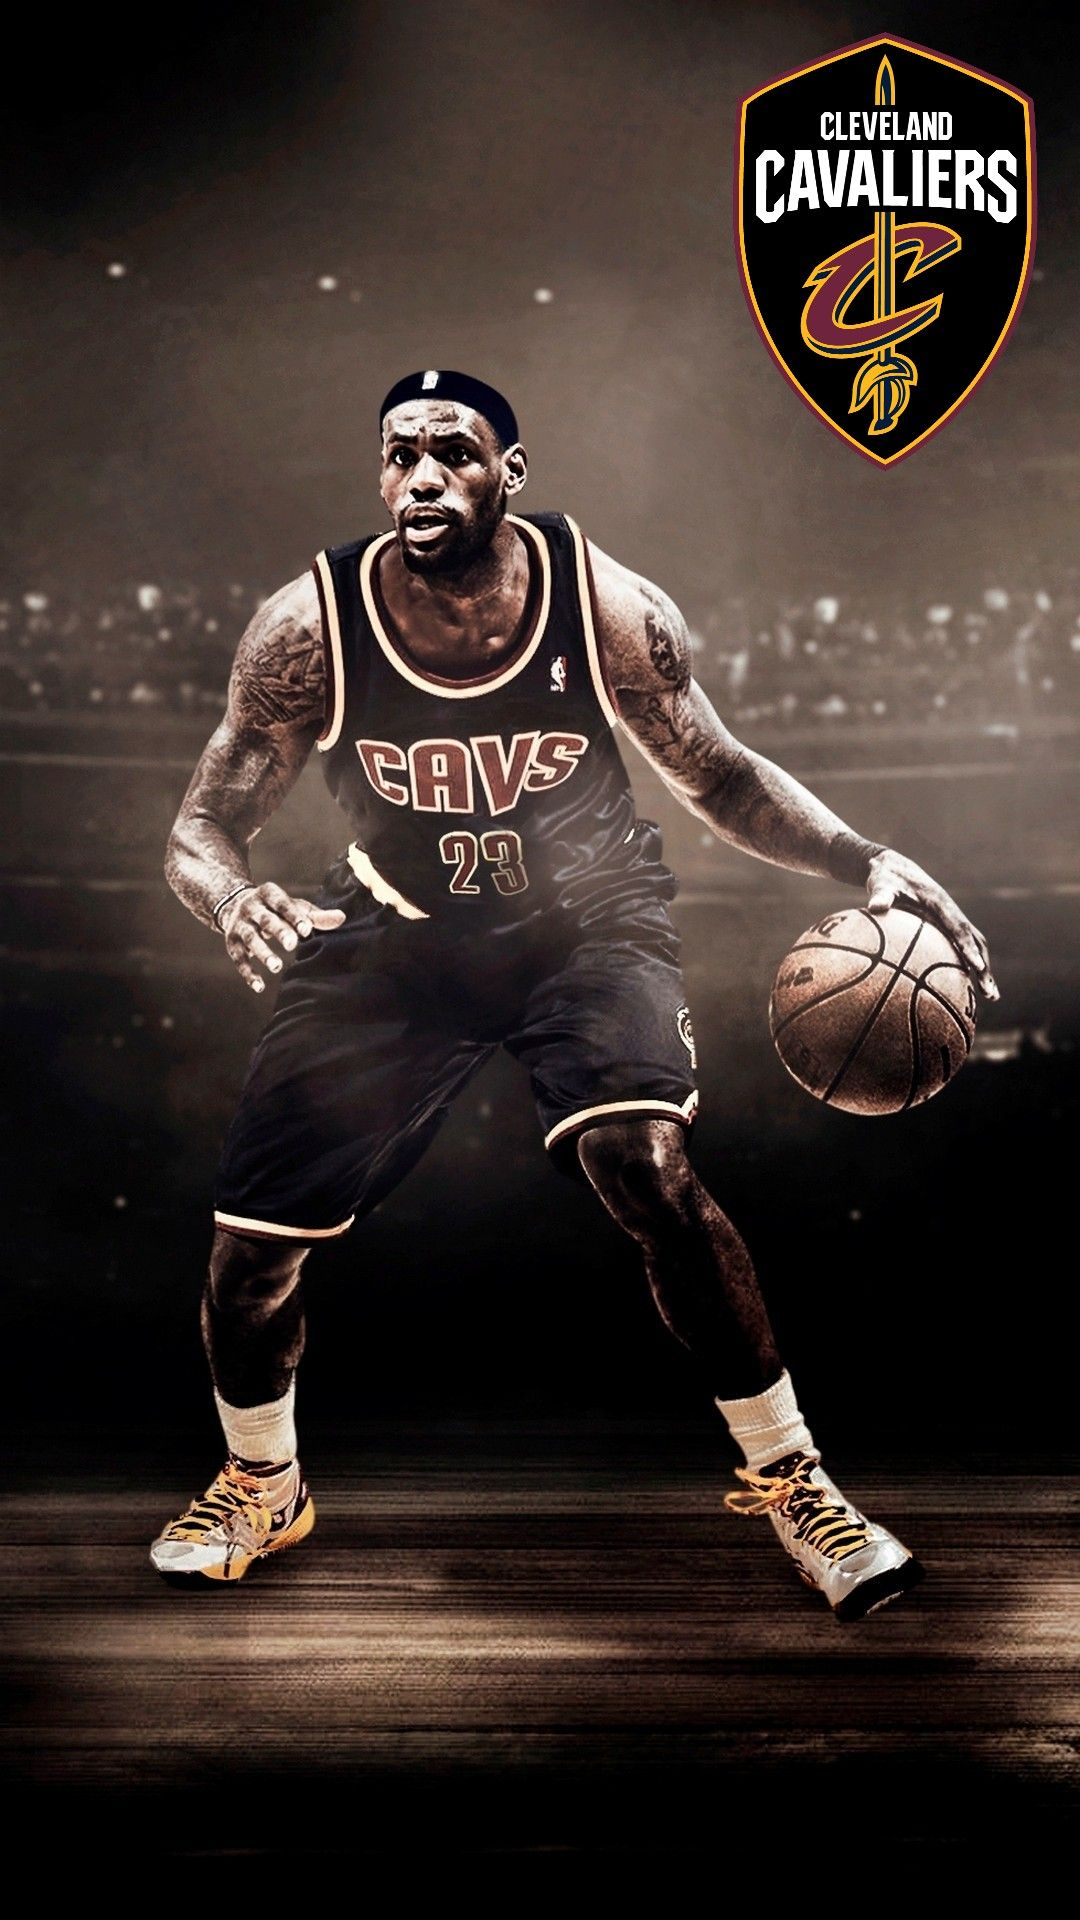 Basketball Wallpaper Best Basketball Wallpapers 2020 Cleveland Cavaliers Lebron Cavaliers Nba Cleveland Cavaliers